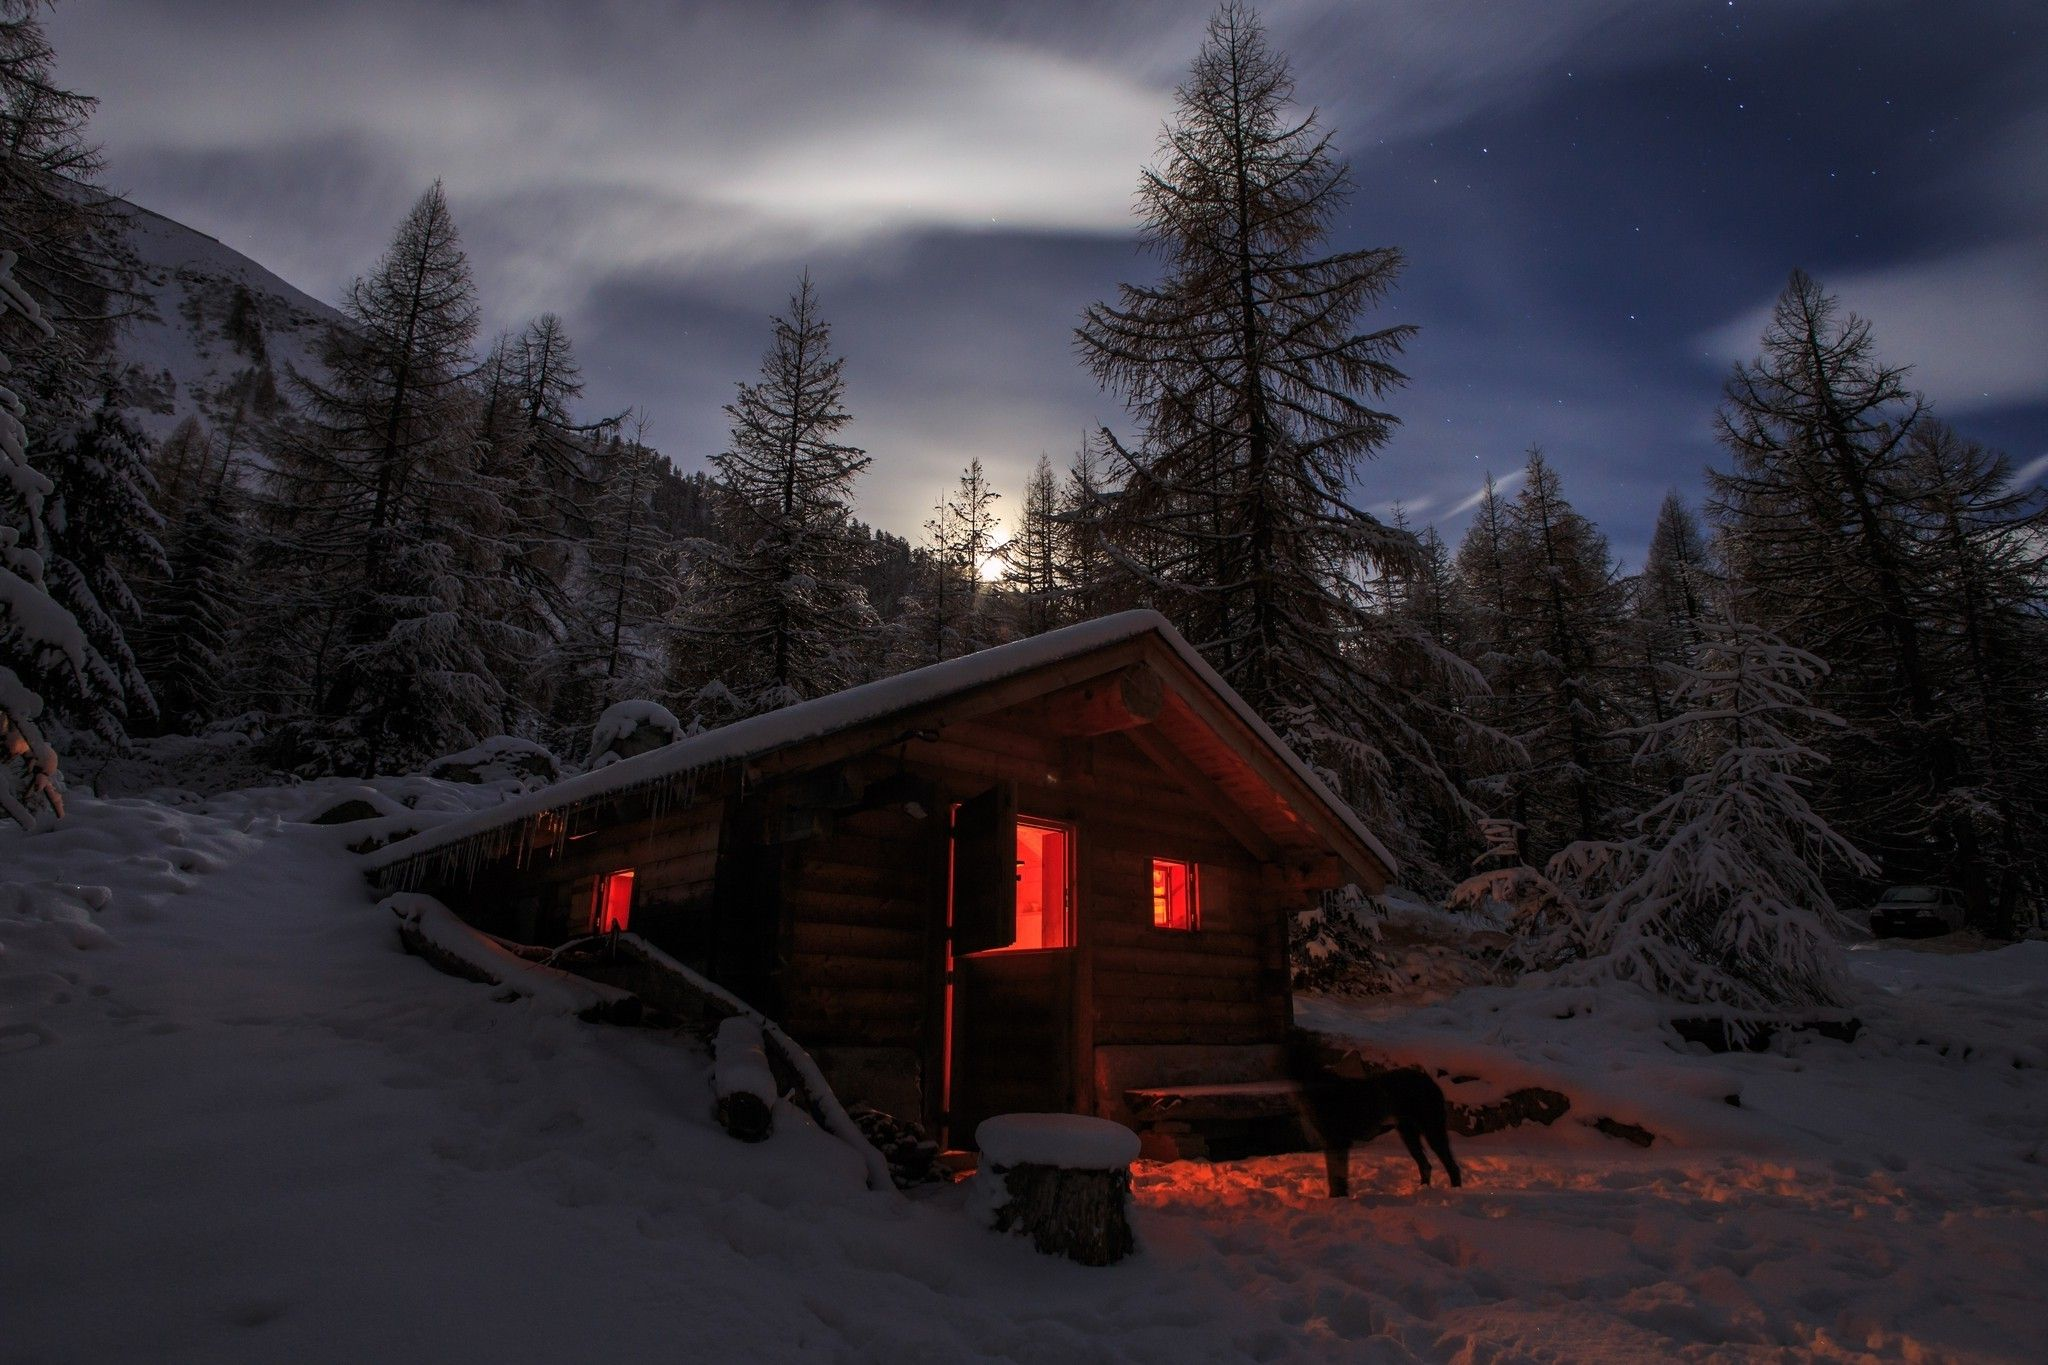 Download Hd Wallpapers Of 386566 Photography Landscape Nature Winter Cabin Snow Moonlight Dog Fores Landscape Walls Landscape Wallpaper Mural Wallpaper